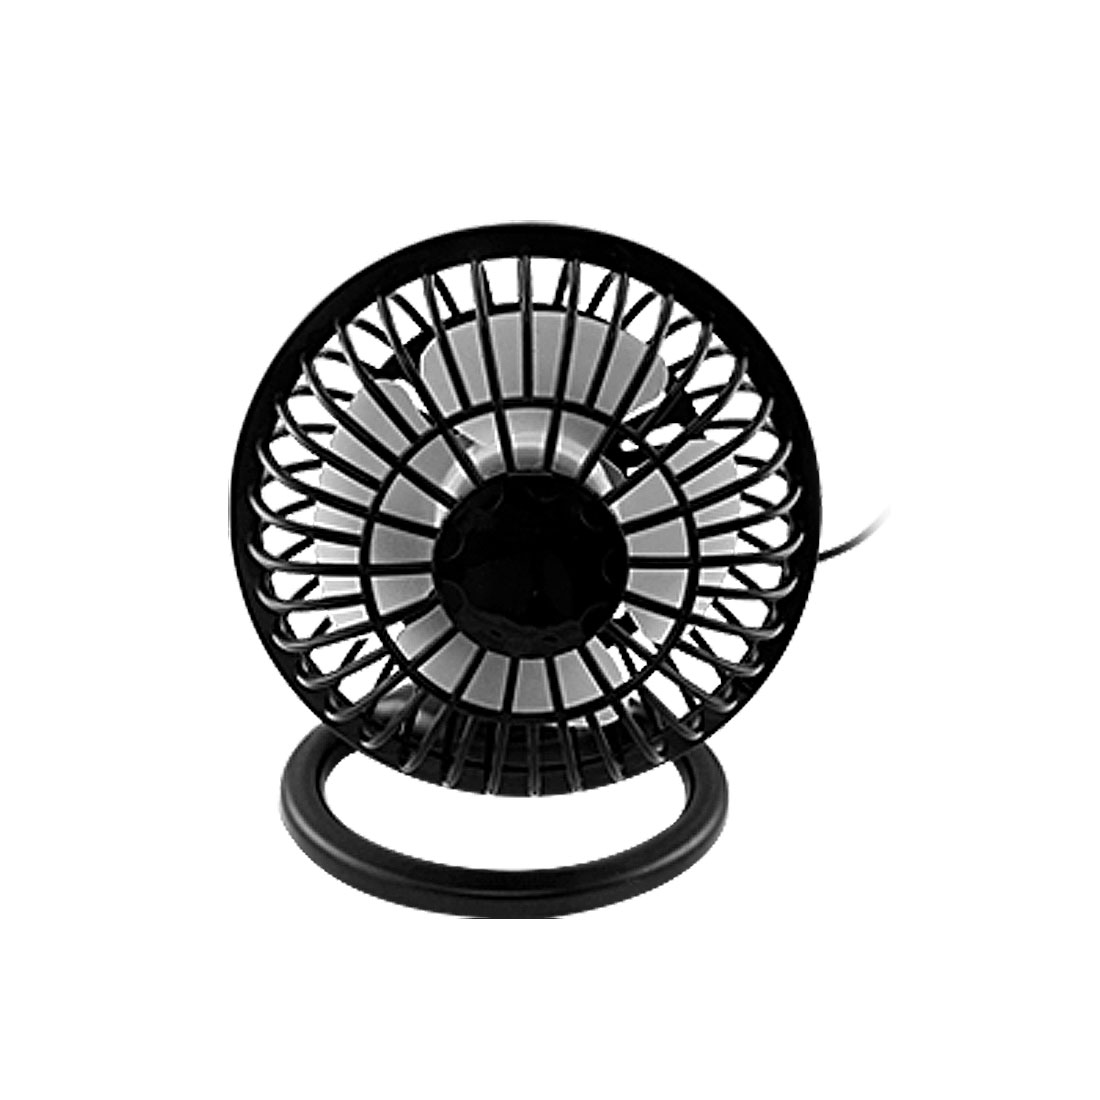 Black Angle Adjustable 4 Plastic ON/OFF Mini USB Desk Fan